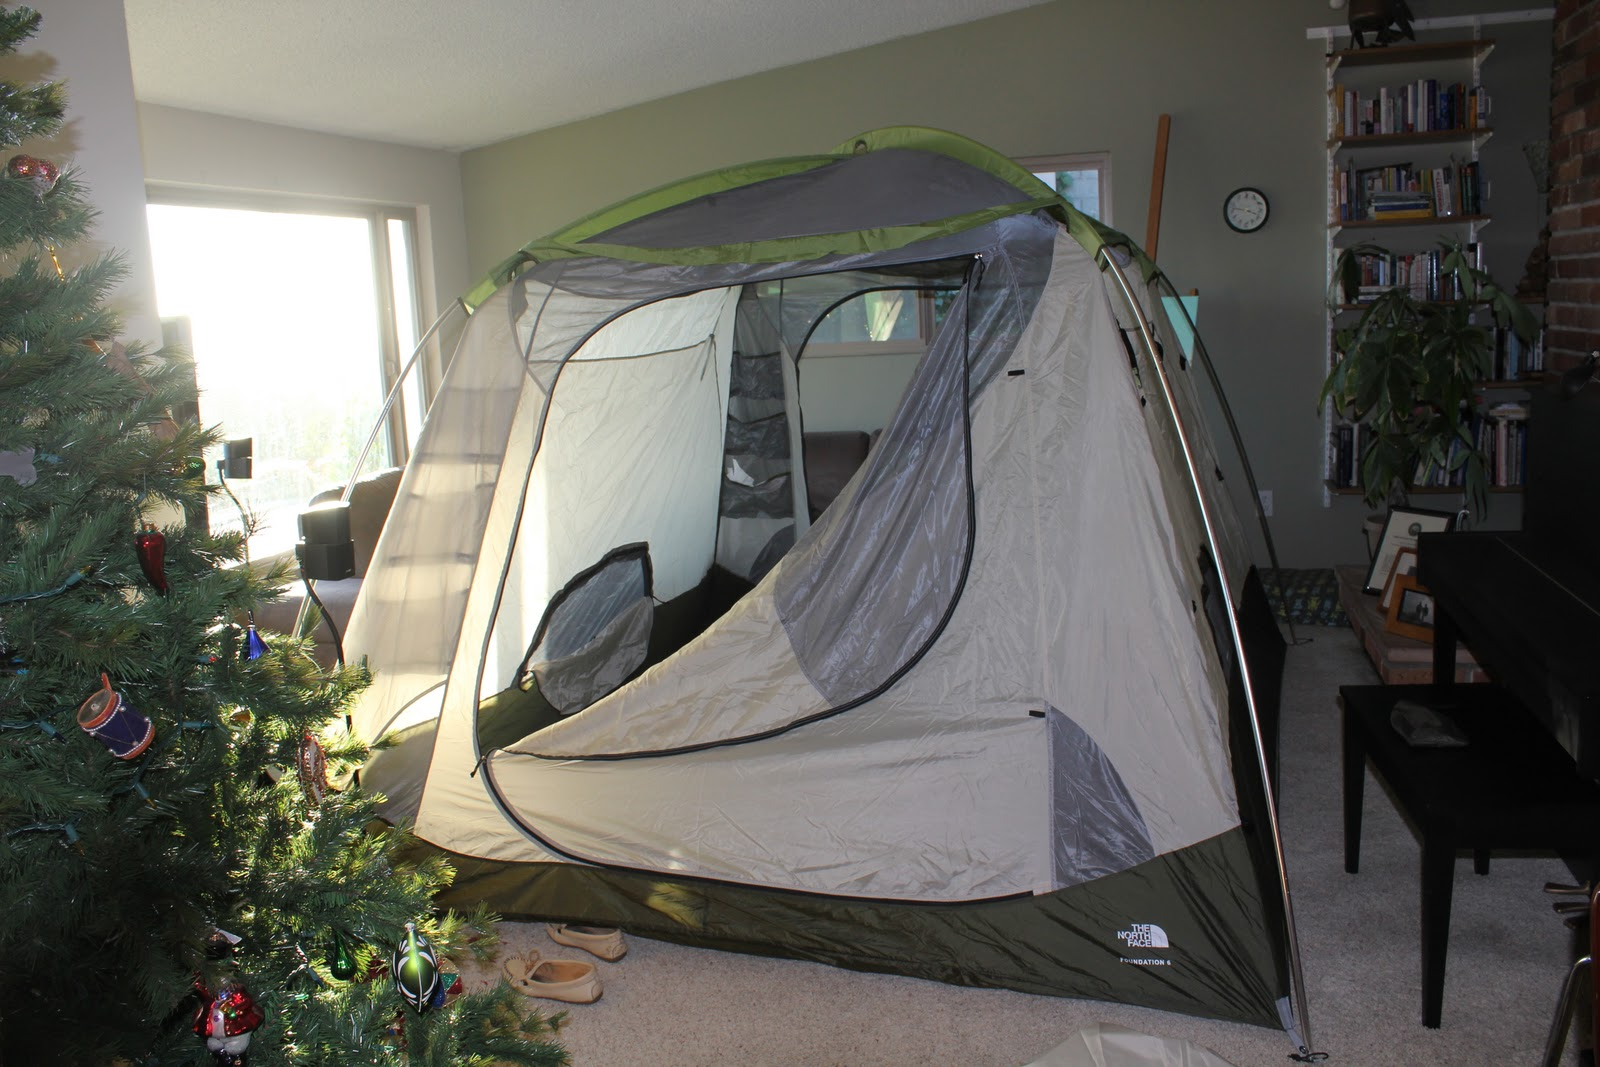 Pammie and the P's: Tent in Living Room, also known as Why